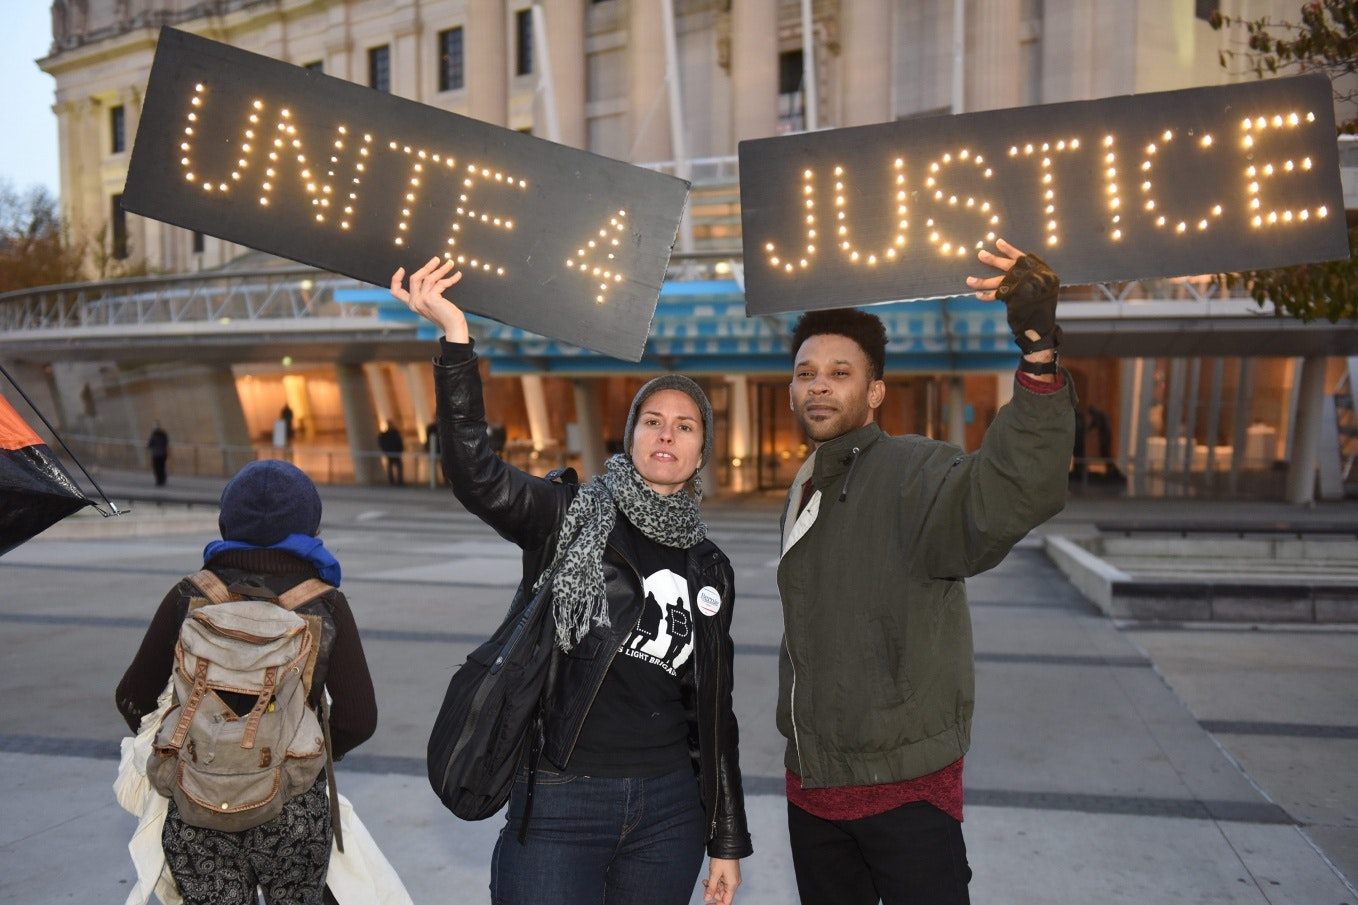 Two people holding signs